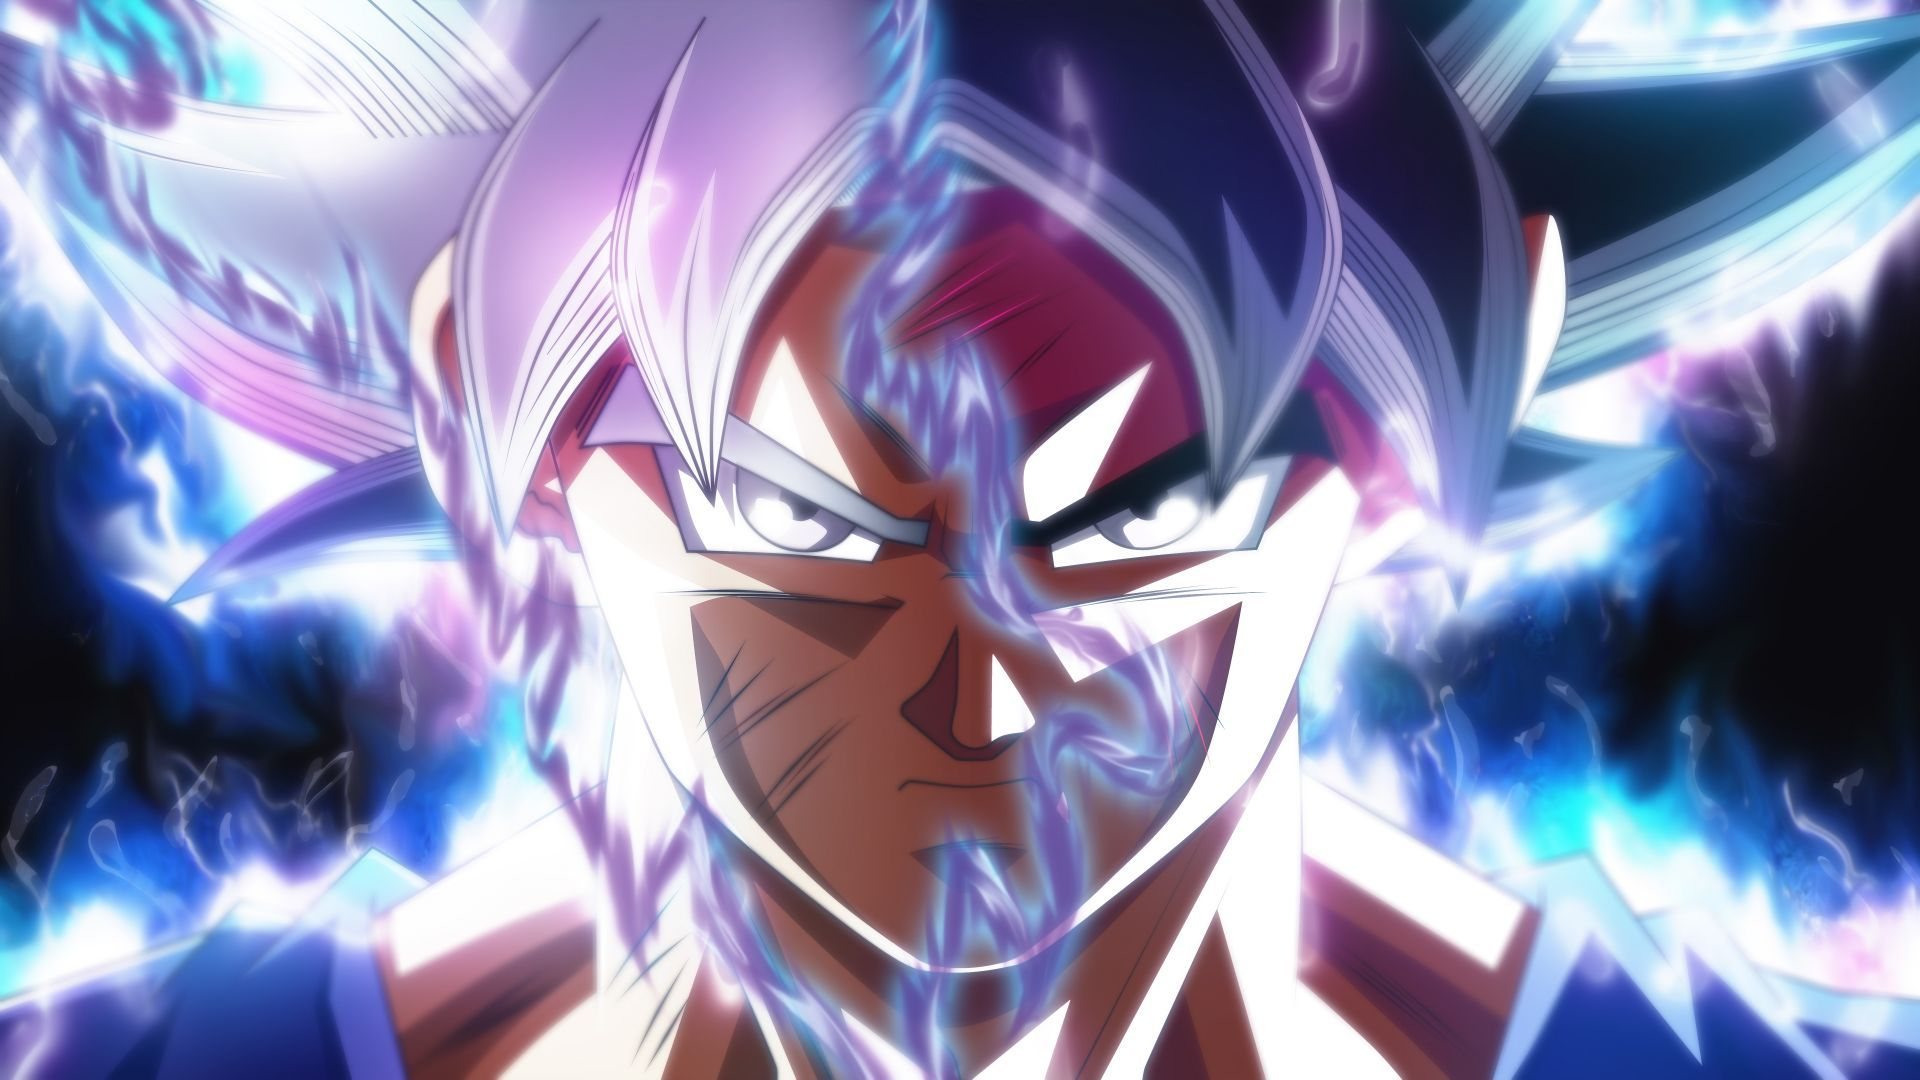 Download Wallpapers Of Goku Ultra Instinct Dragon Ball